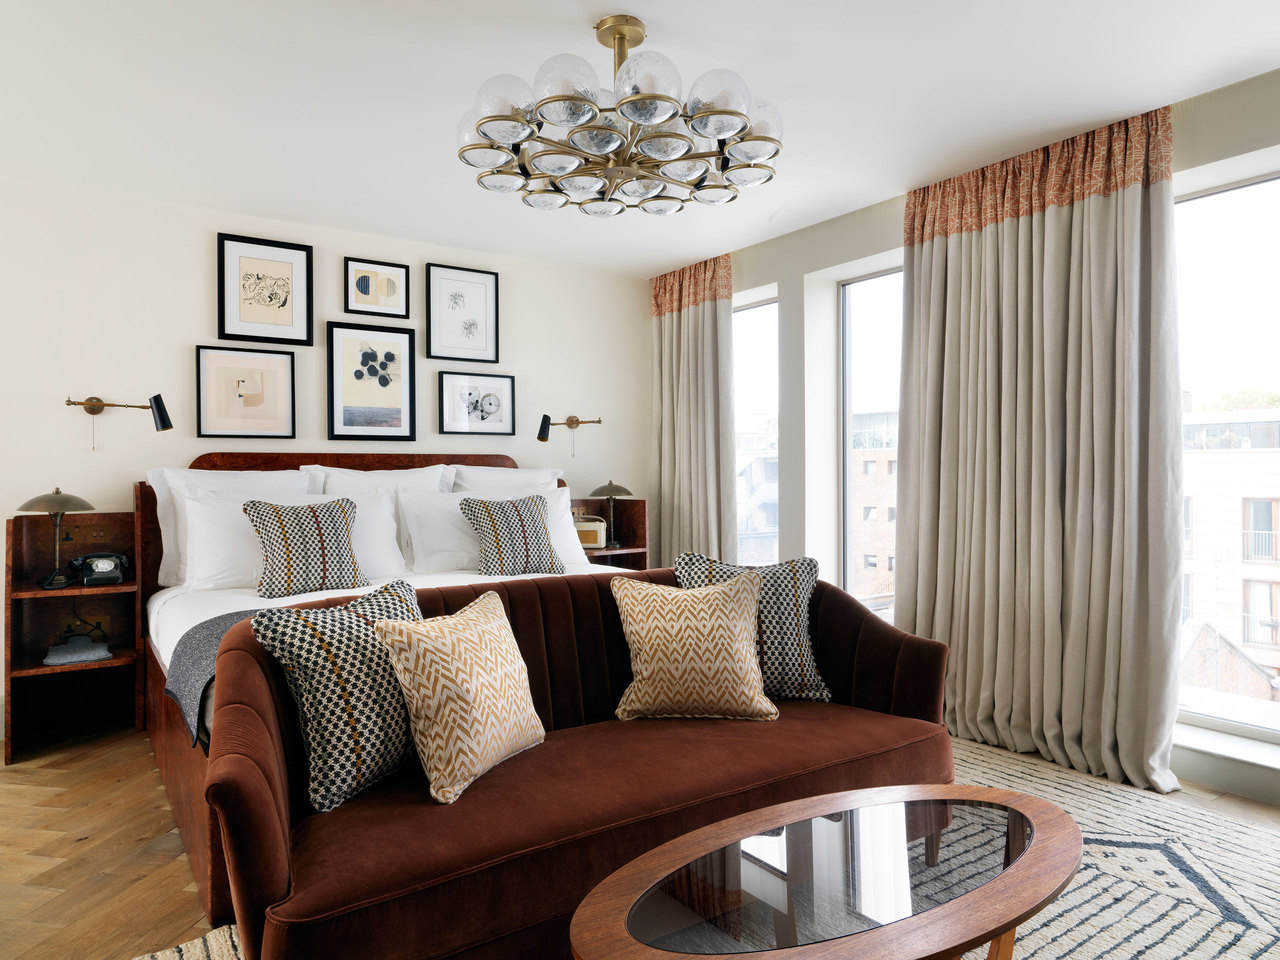 A bedroom with artwork and retro furnishings